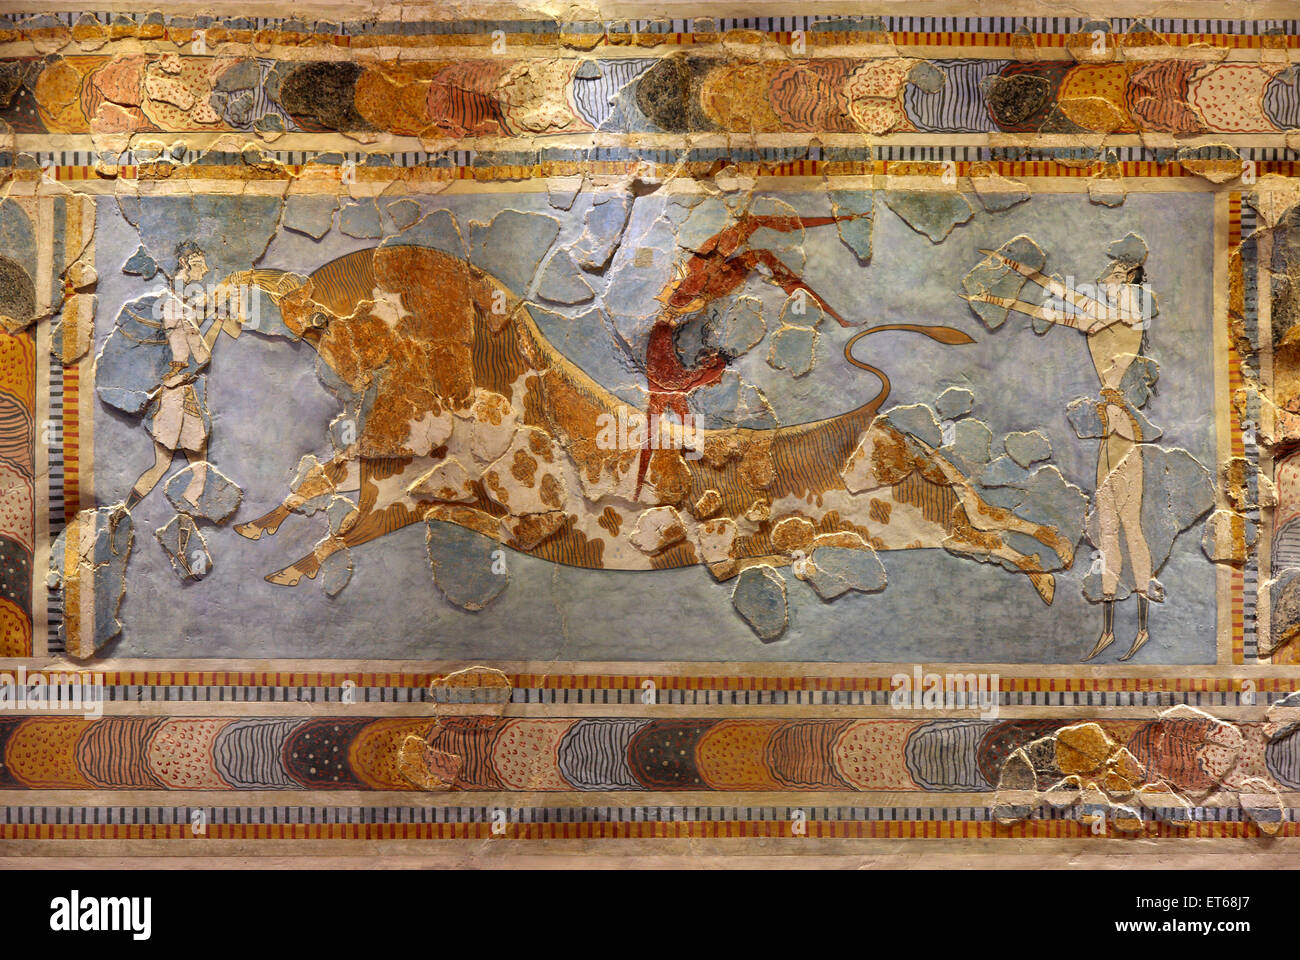 The Bull-leaping fresco from the Minoan Palace of Knossos, in the Archaeological Museum of Heraklion, Crete, Greece - Stock Image